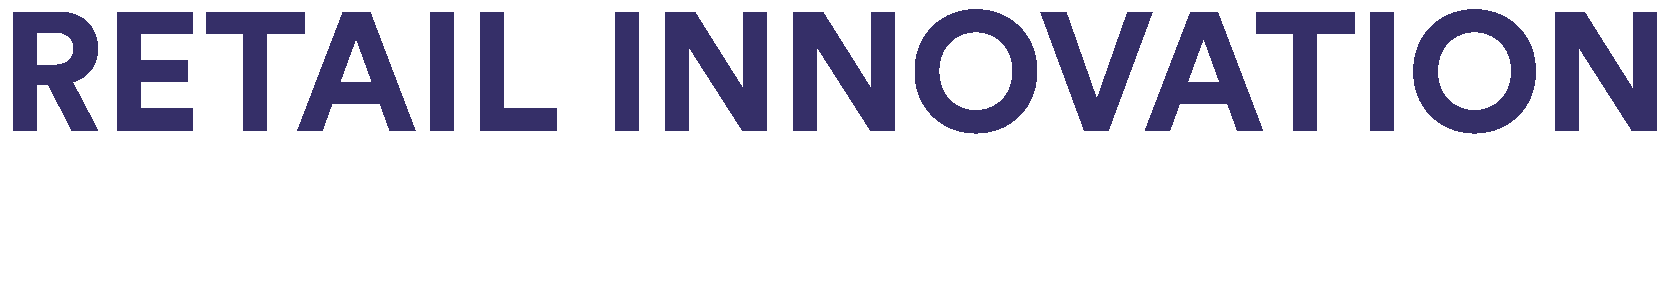 YOOBIC_REtail_Innovation_Breakfast_Logo.png